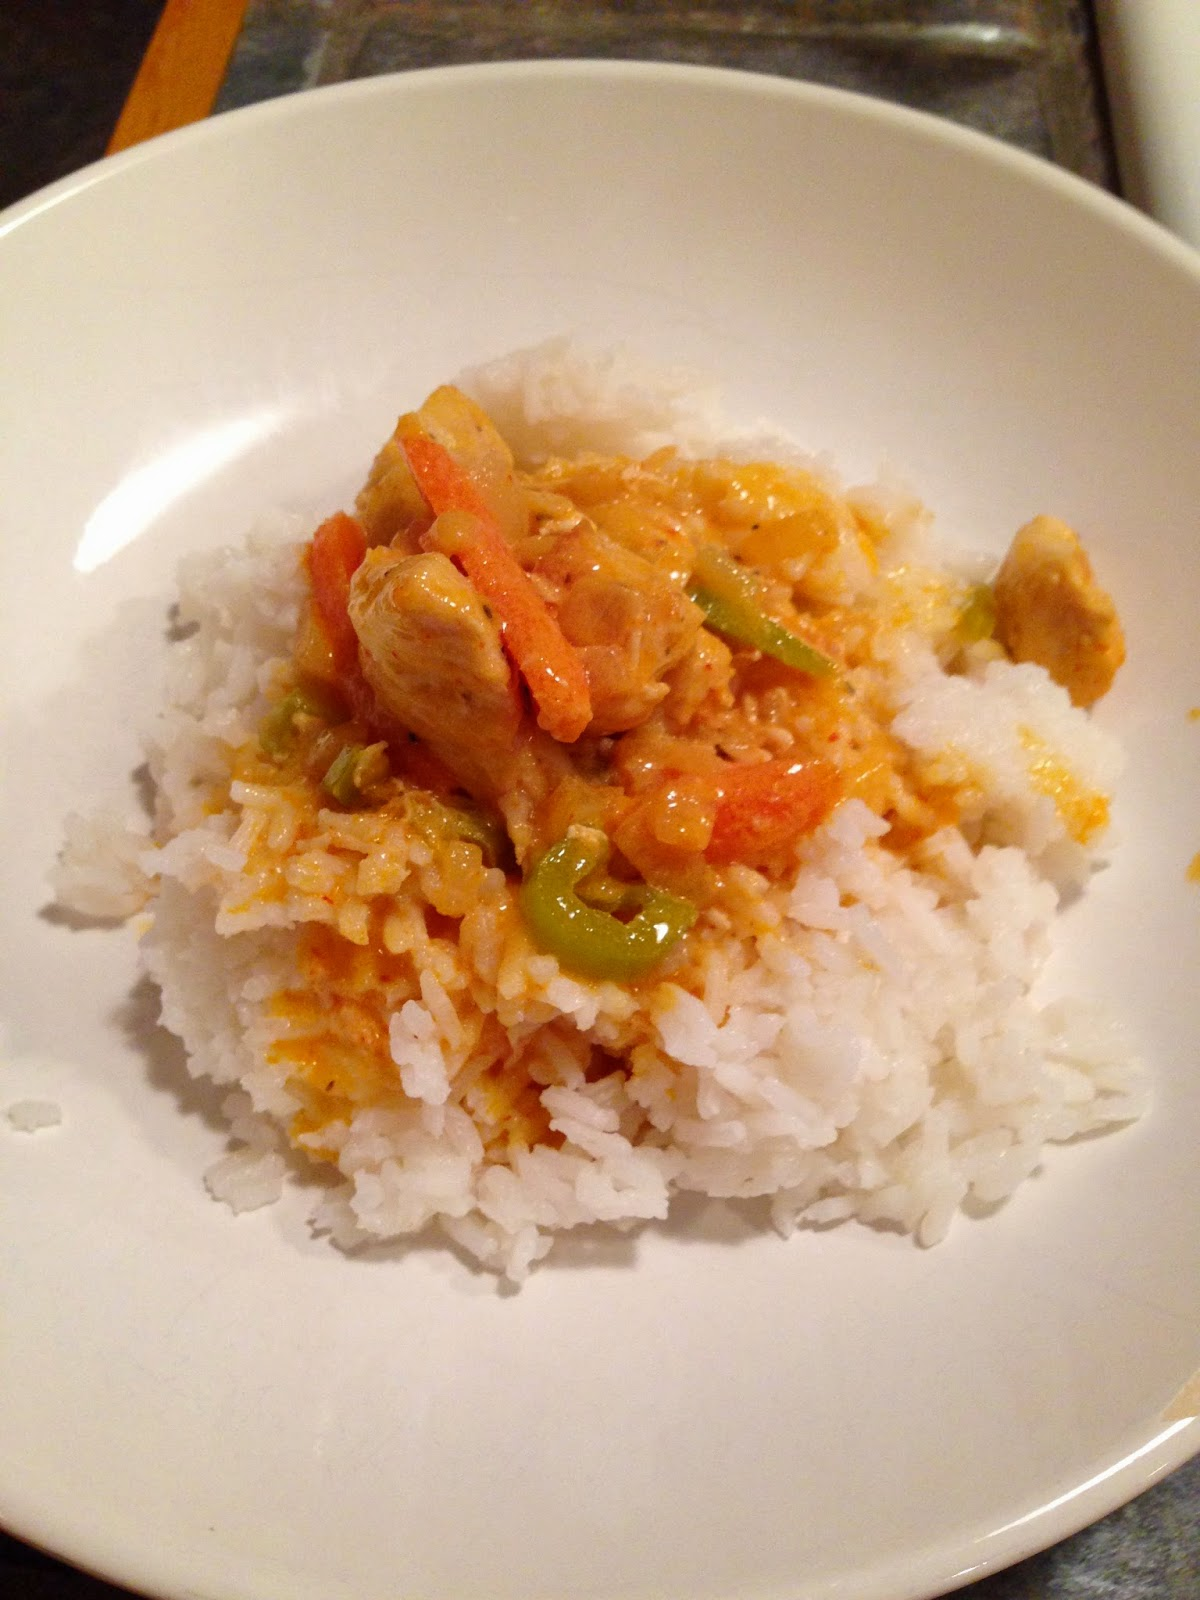 Quest for Delish: Panang Curry with Chicken